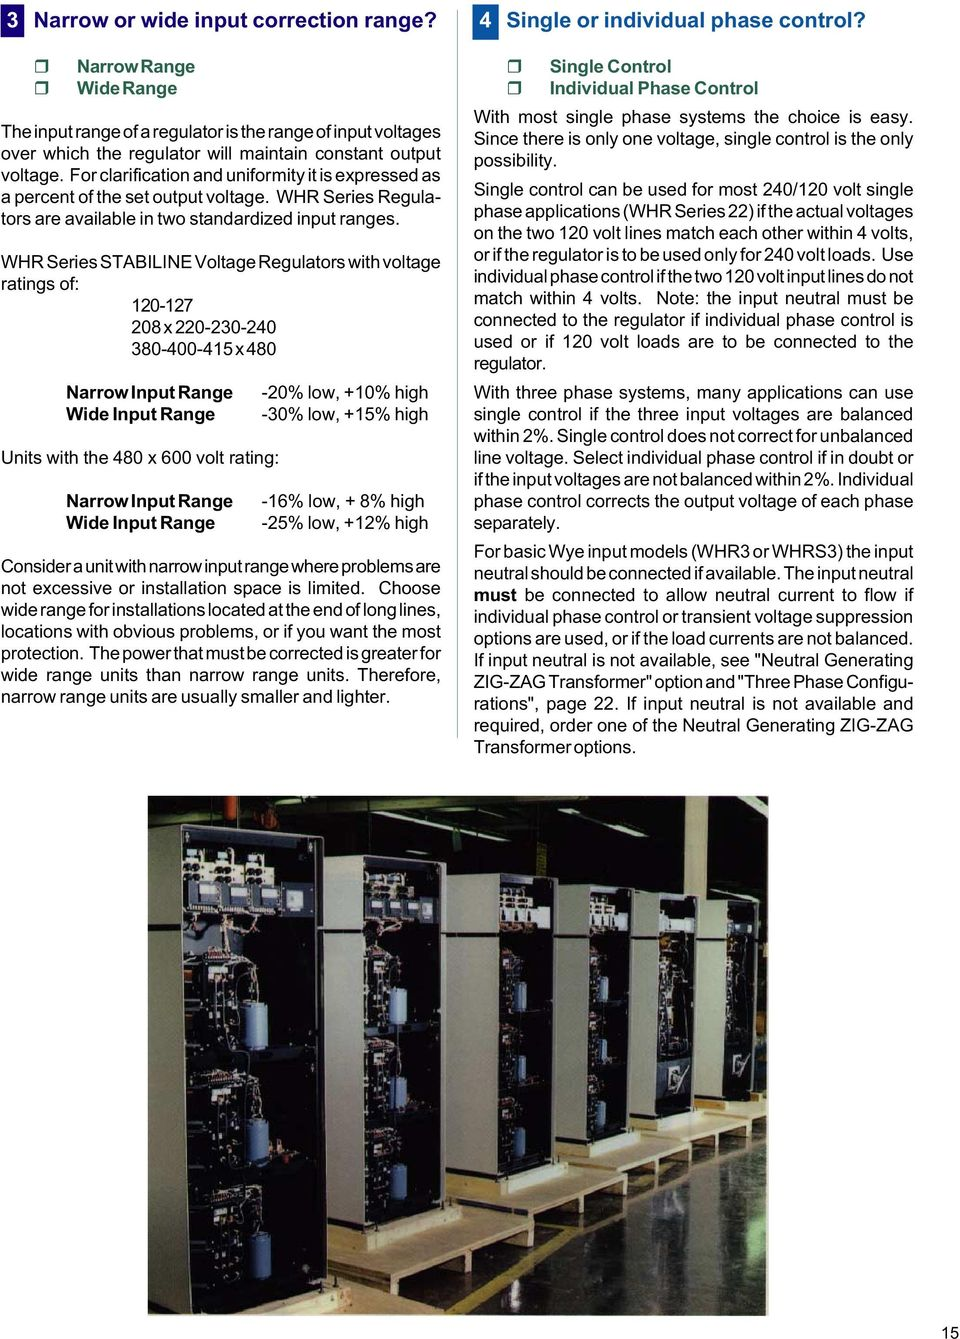 Whr Series Stabiline Voltage Regulators Pdf Power Supplies And For Lowvoltages Heaters With Ratings Of 120 127 208 X 220